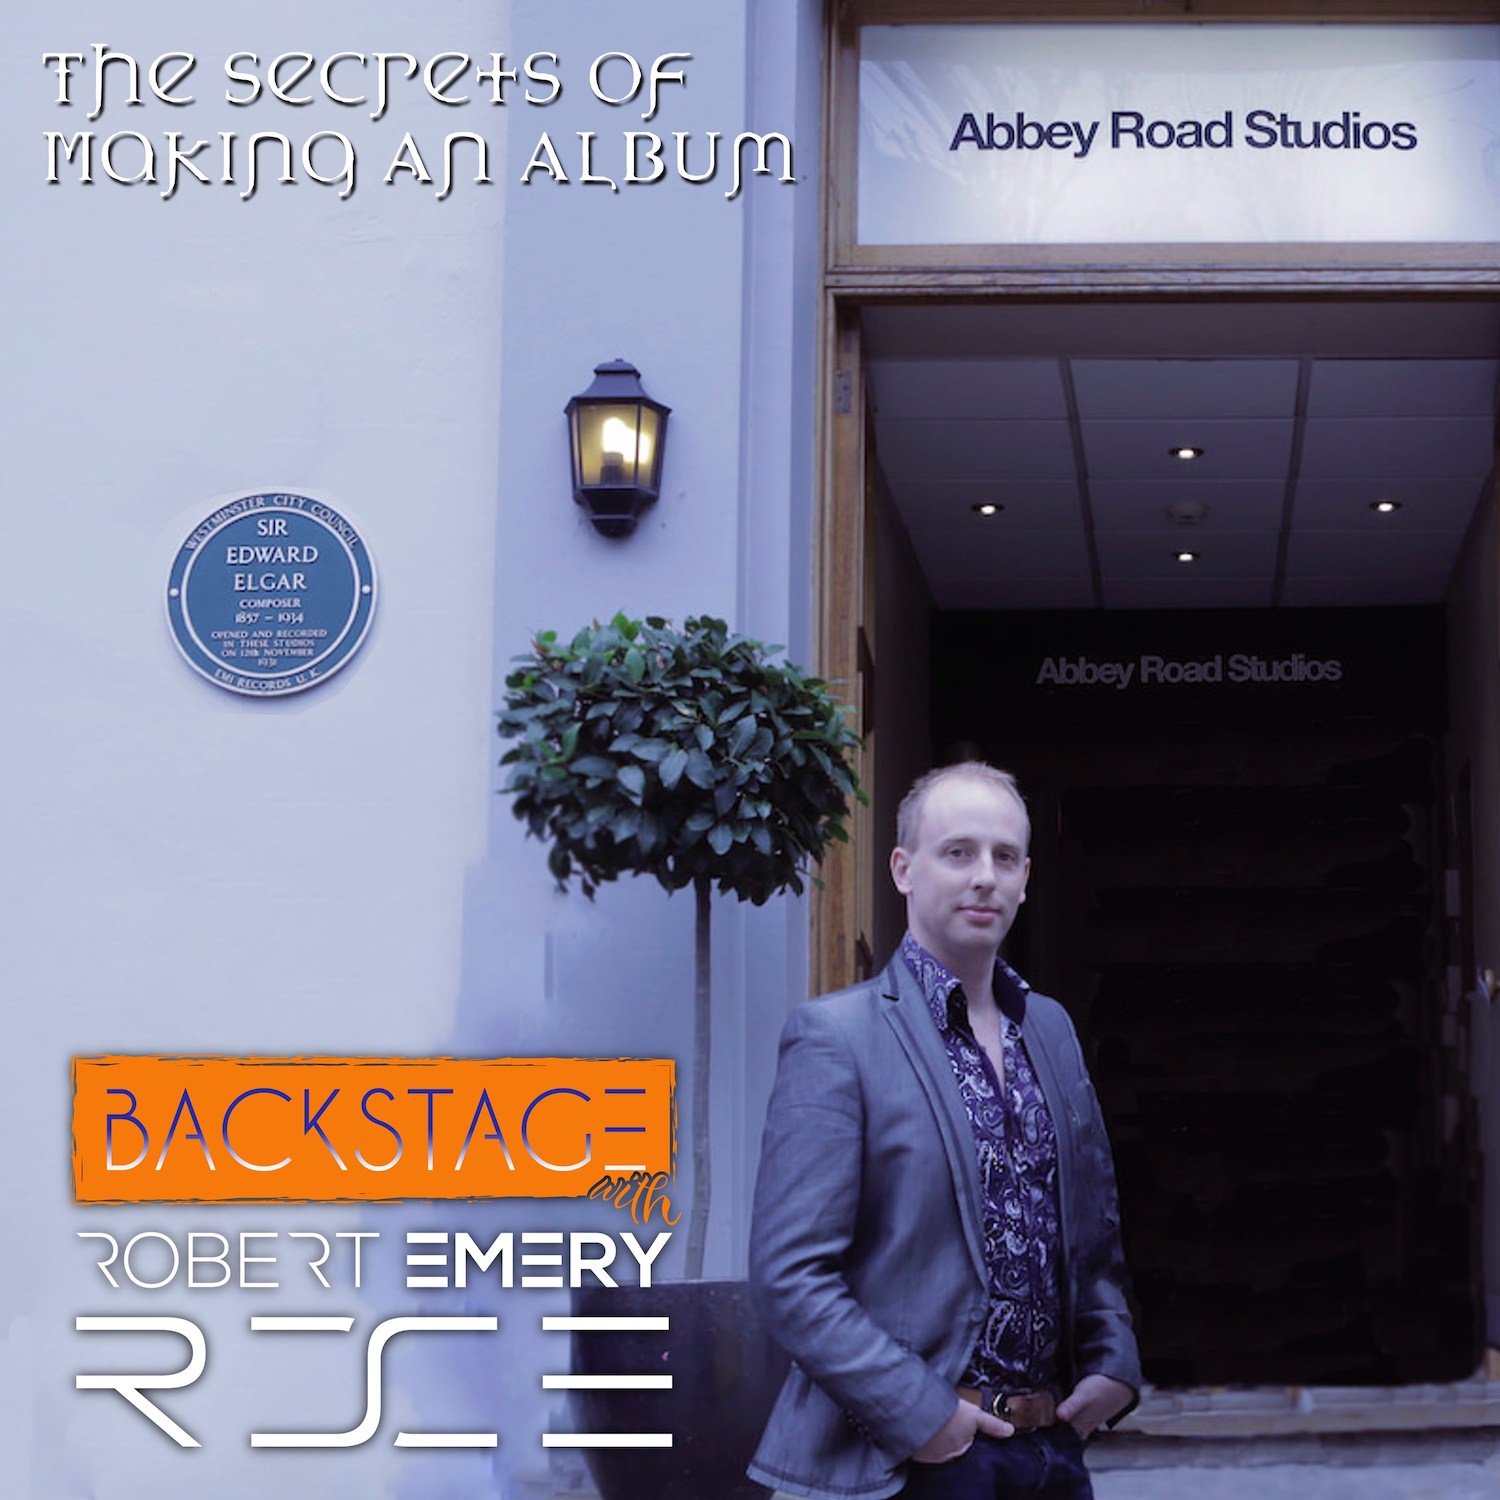 Robert Emery at Abbey Road Studios